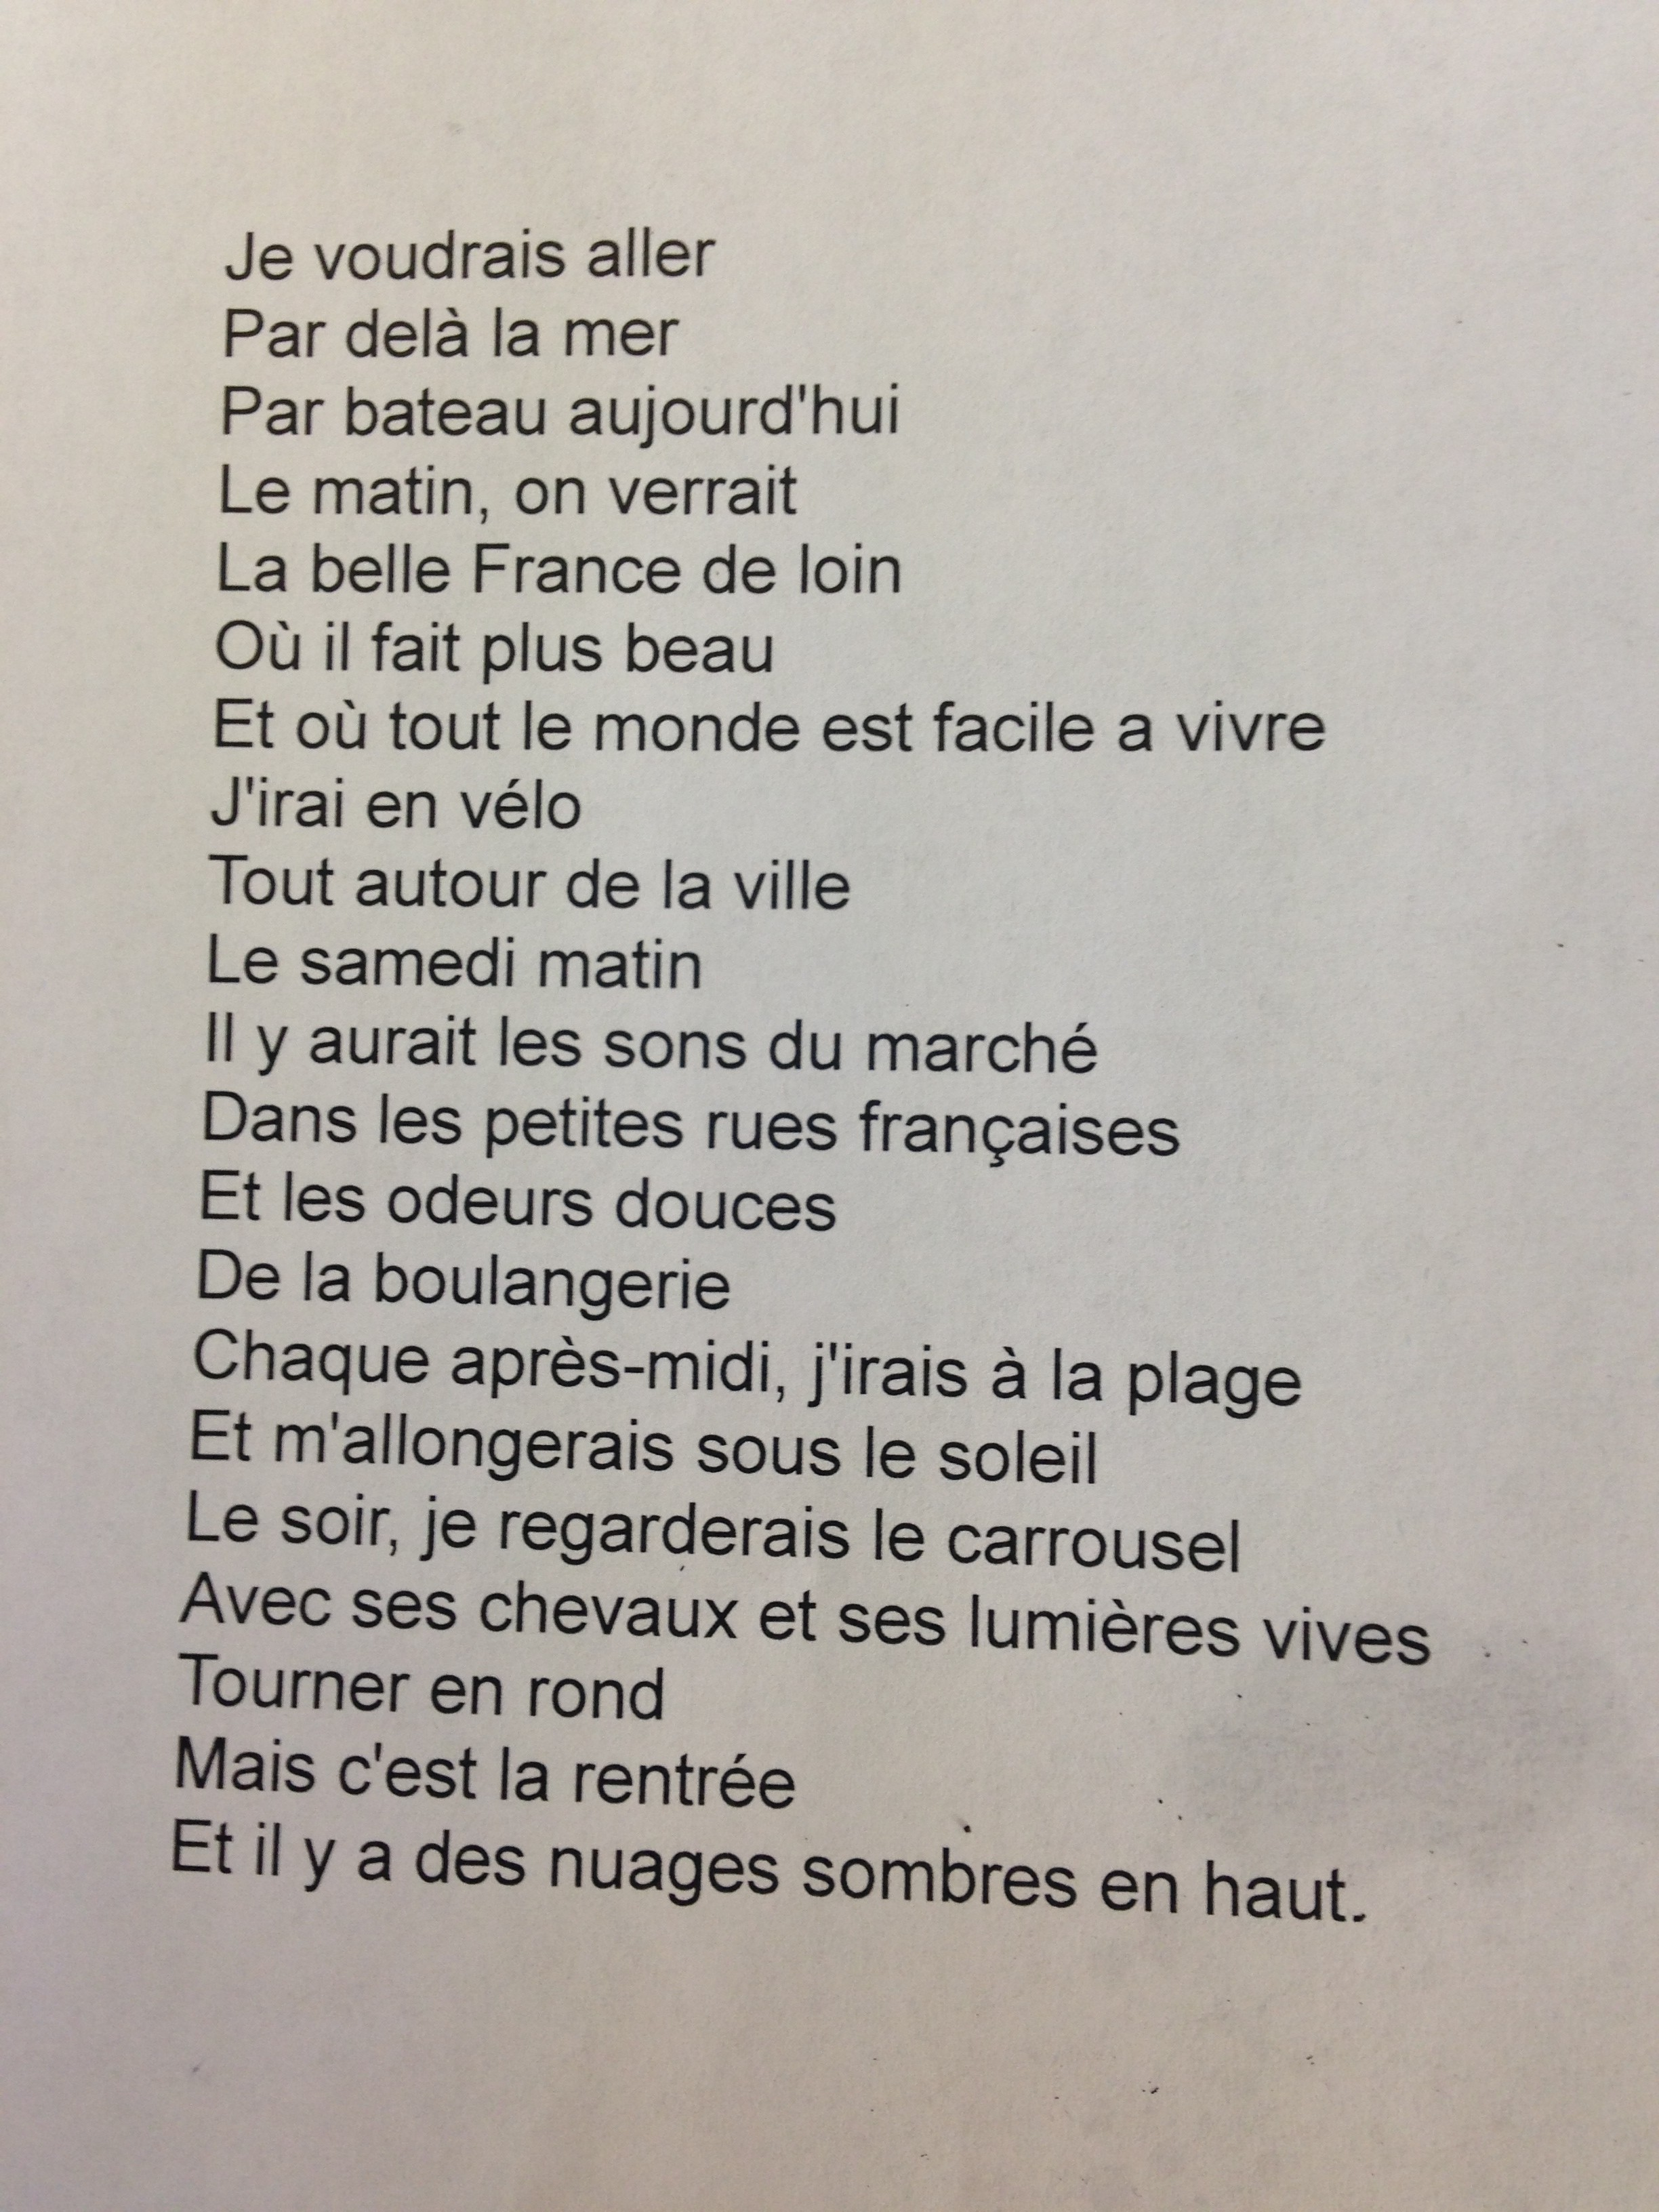 Famous French poets